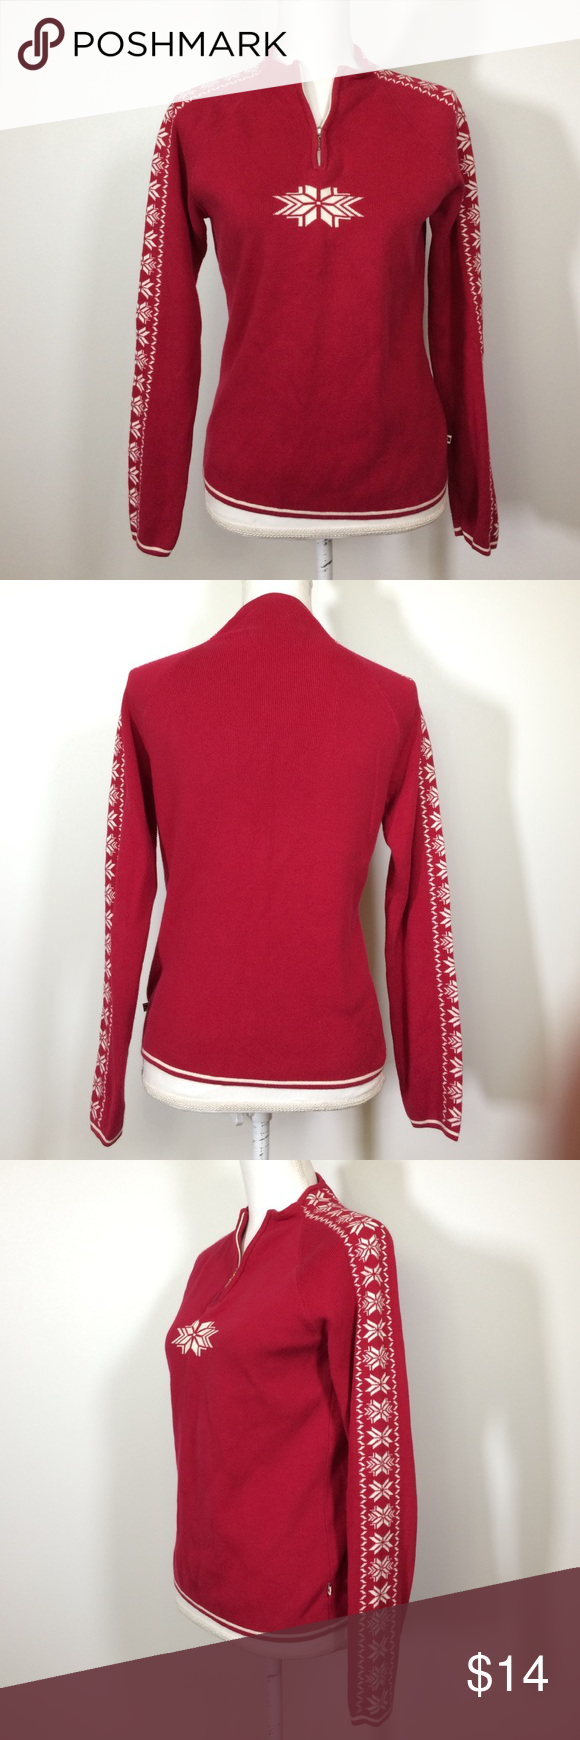 """Tommy Hilfiger snowflake 1/4 zip pullover sweater Good used condition, chest 16.5 across / 34"""" around, length: 22"""", long sleeve, 100% cotton Tommy Hilfiger Sweaters"""